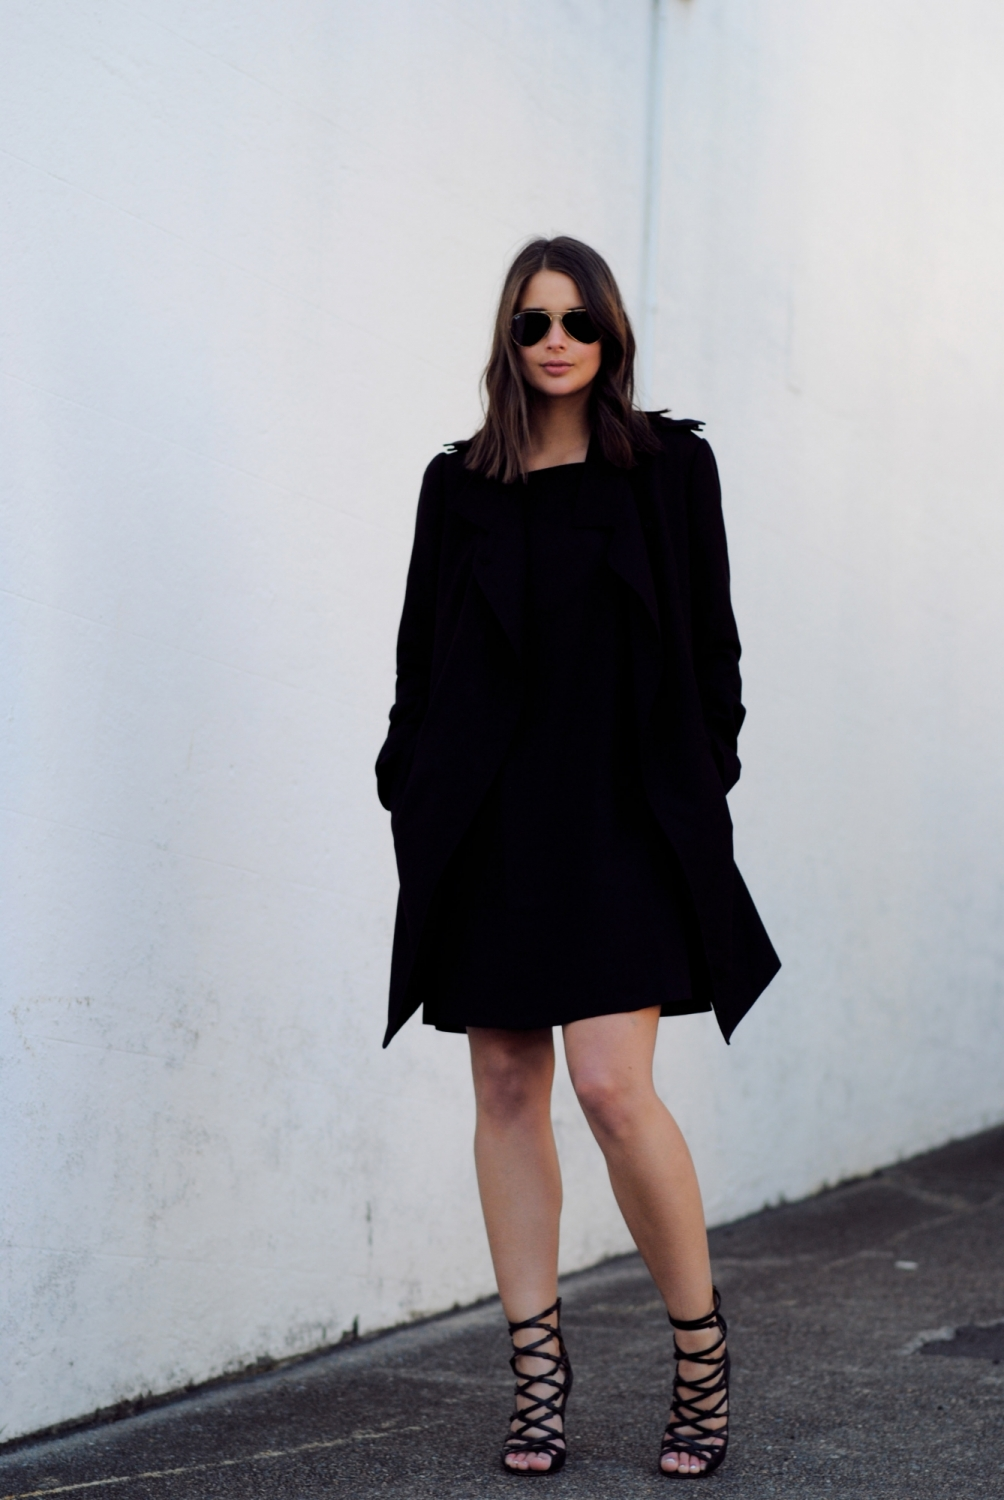 harper and harley_fashion style blogger_black outfit_asos dress_01_